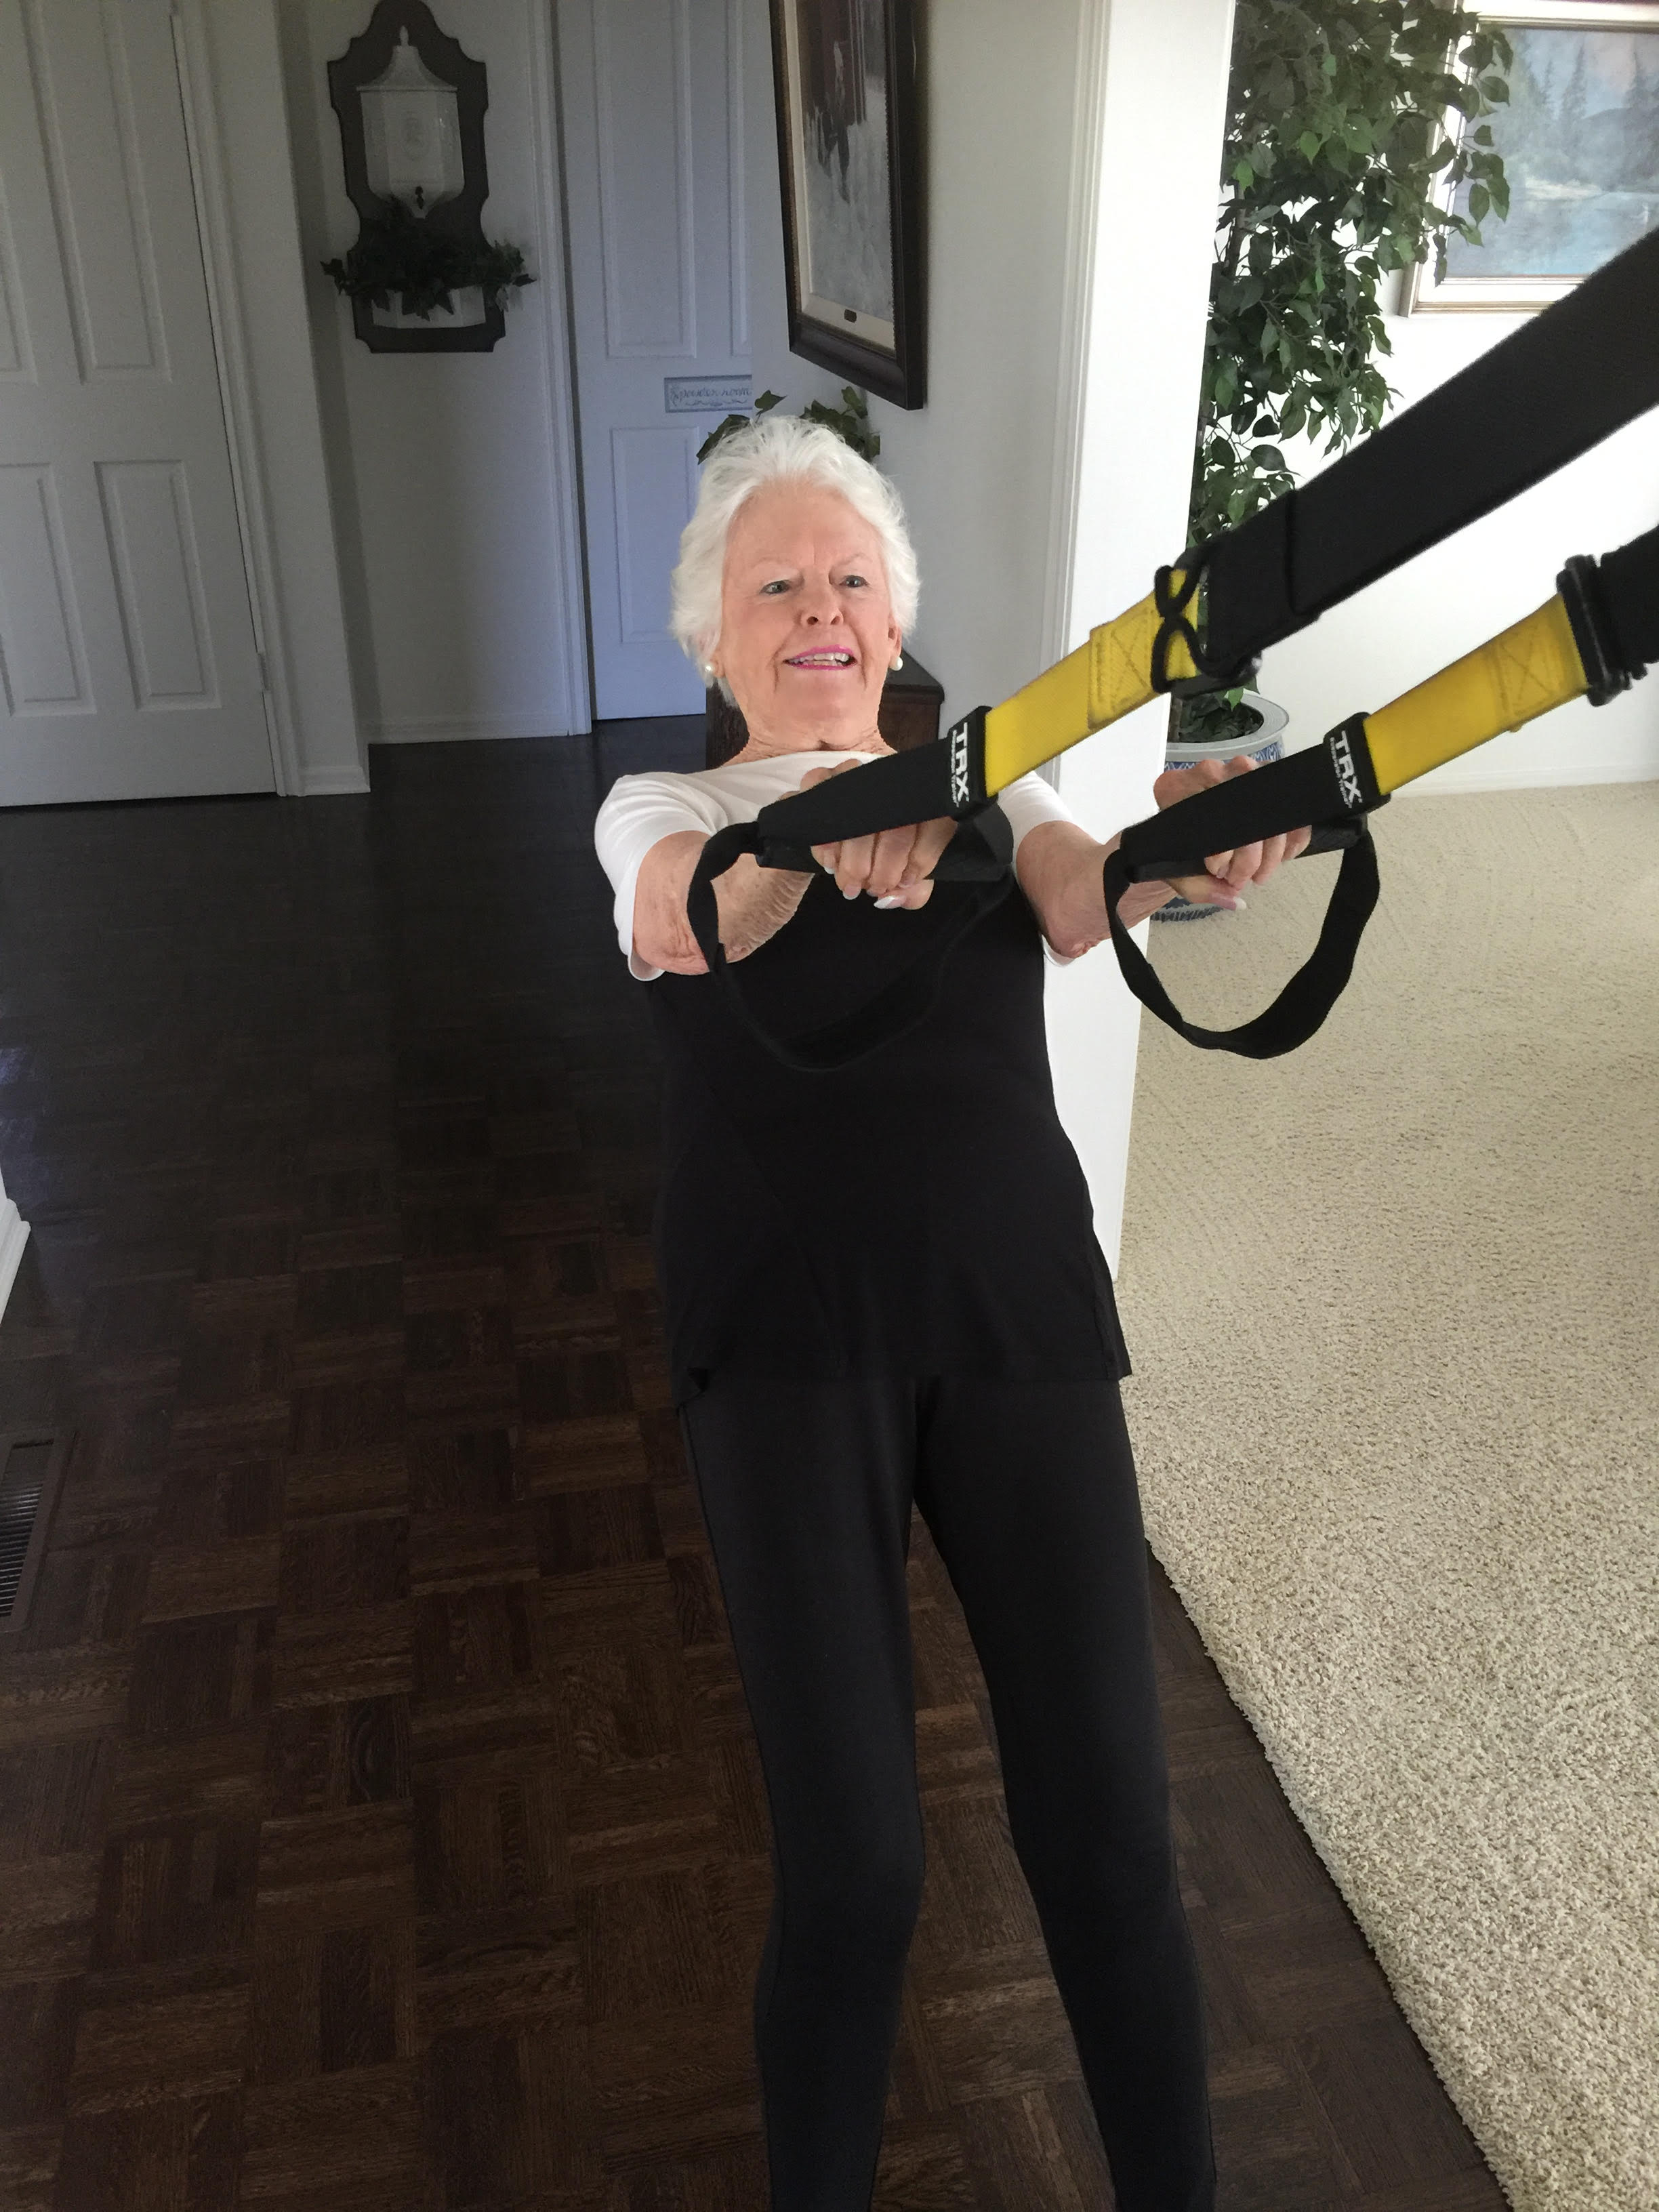 woman working out on TRX Suspension Trainer at home